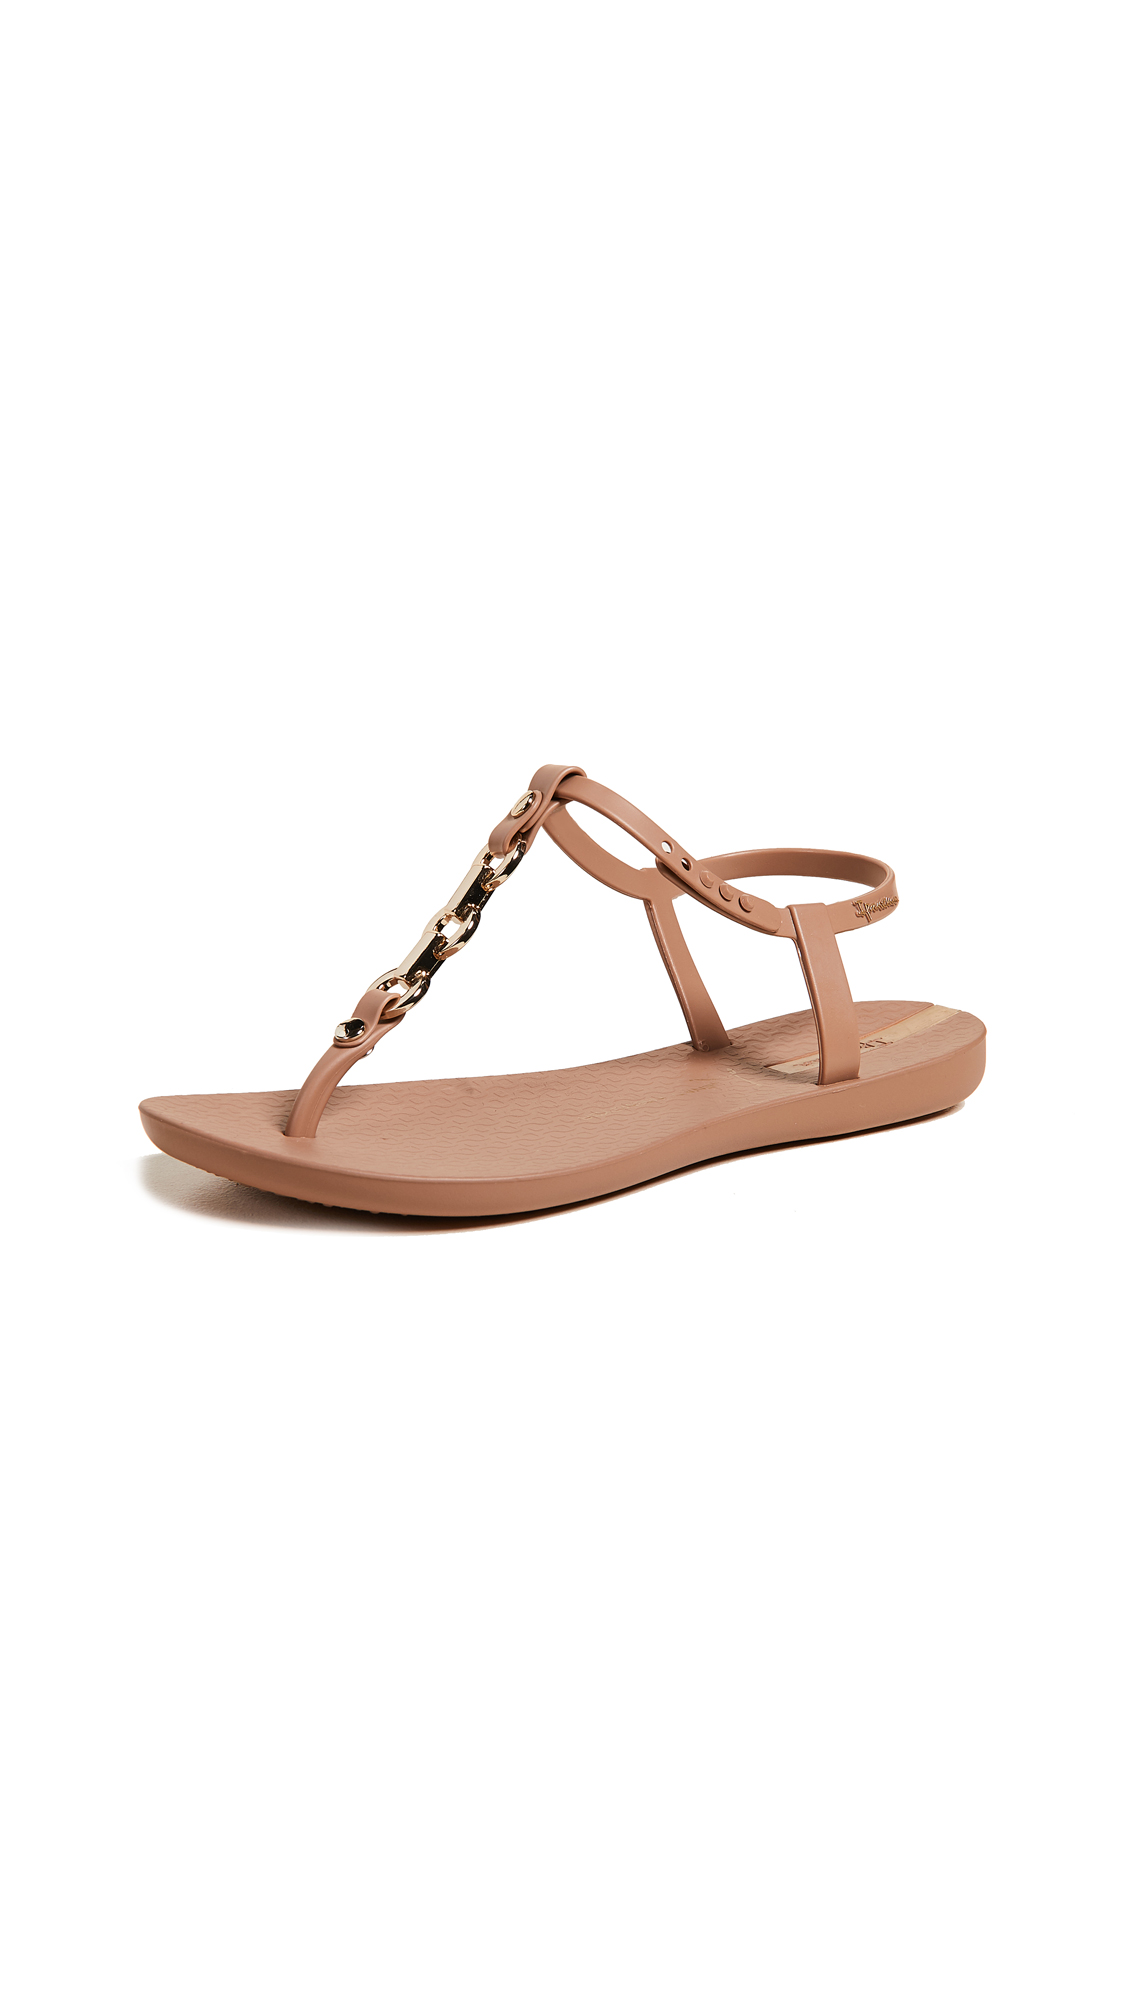 Ipanema Lenny Unity T-Srap Sandals - Brown